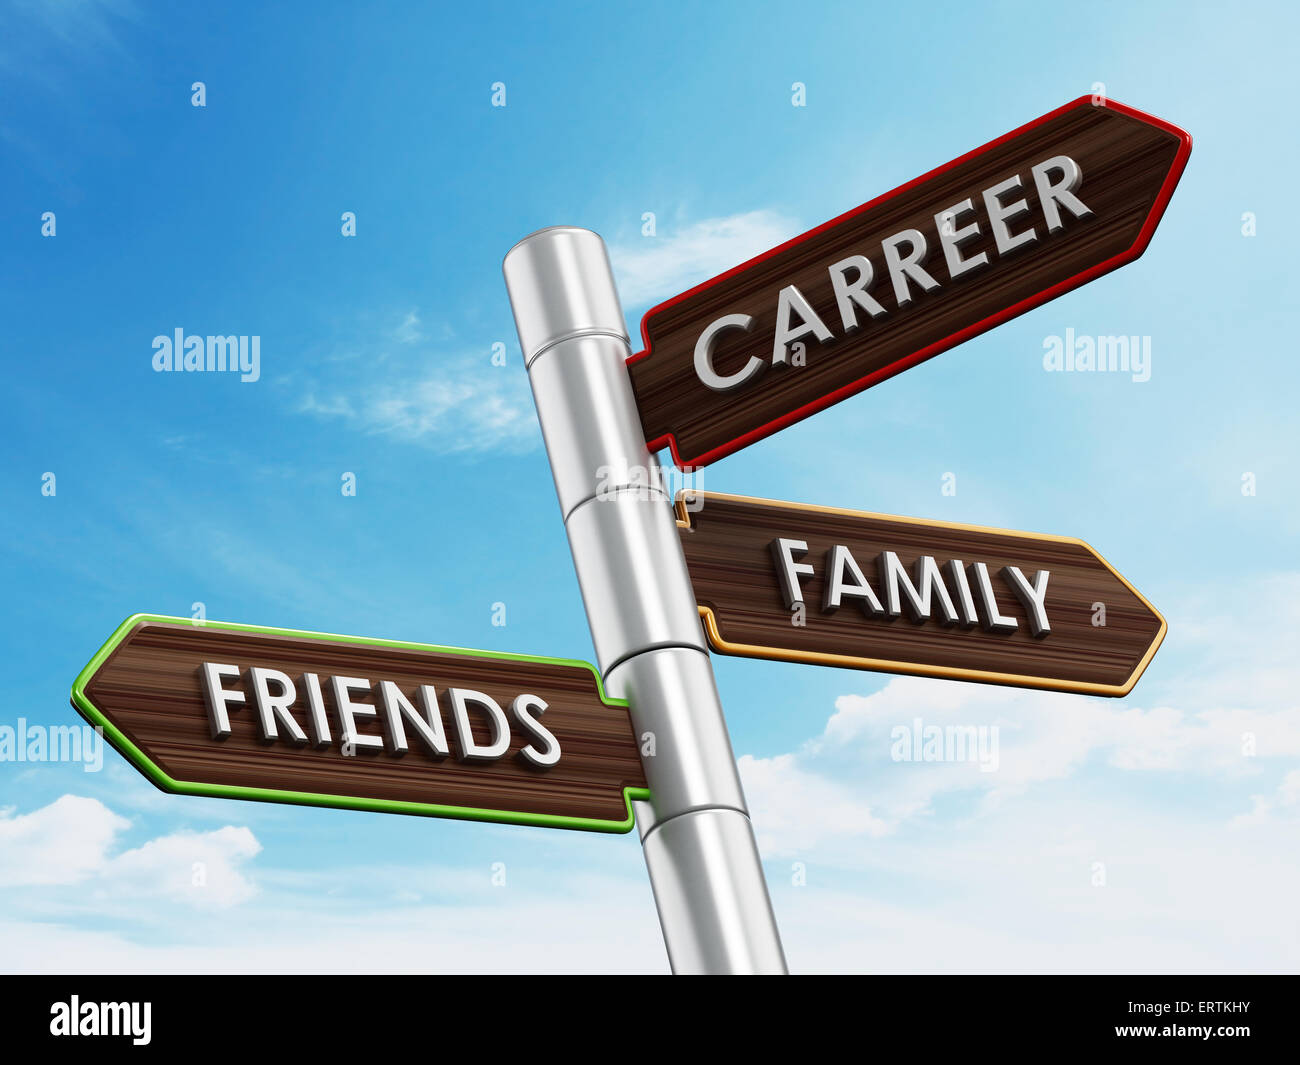 Carreer, family and friends post against blue background - Stock Image